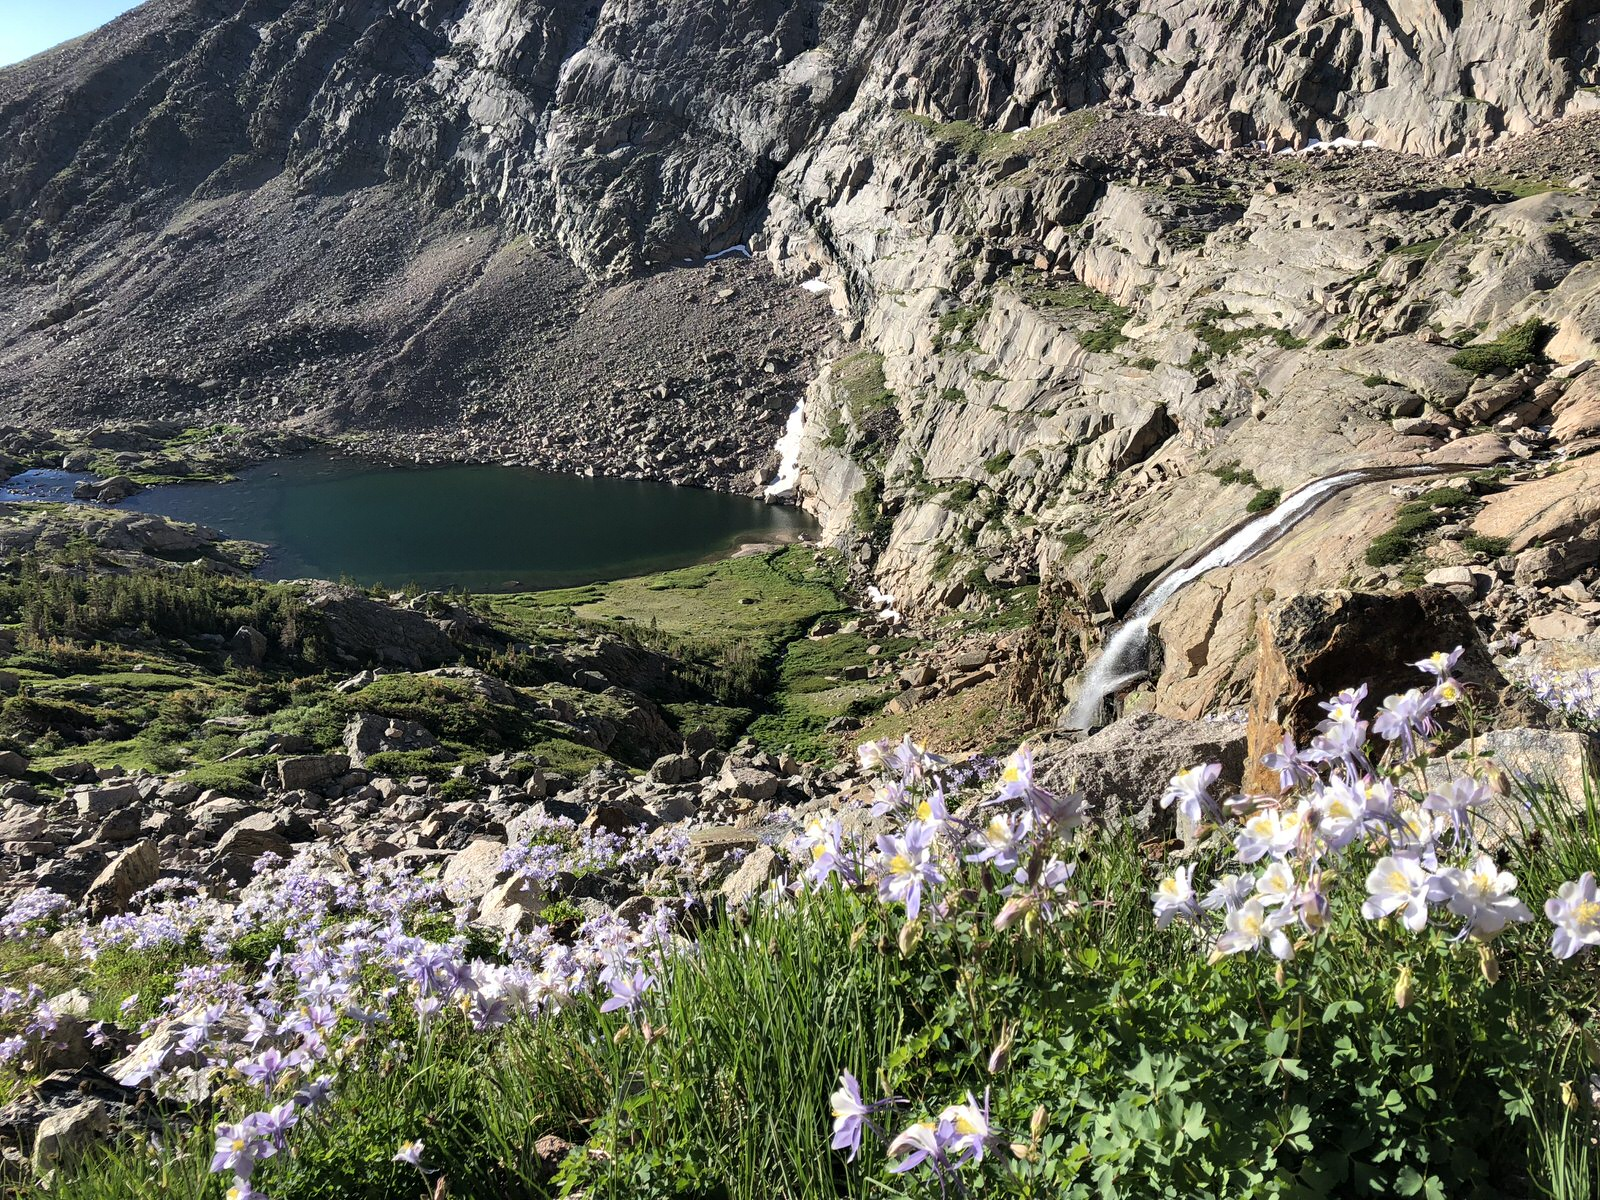 Looking down on Chasm Lake from the Summit of Longs Peak